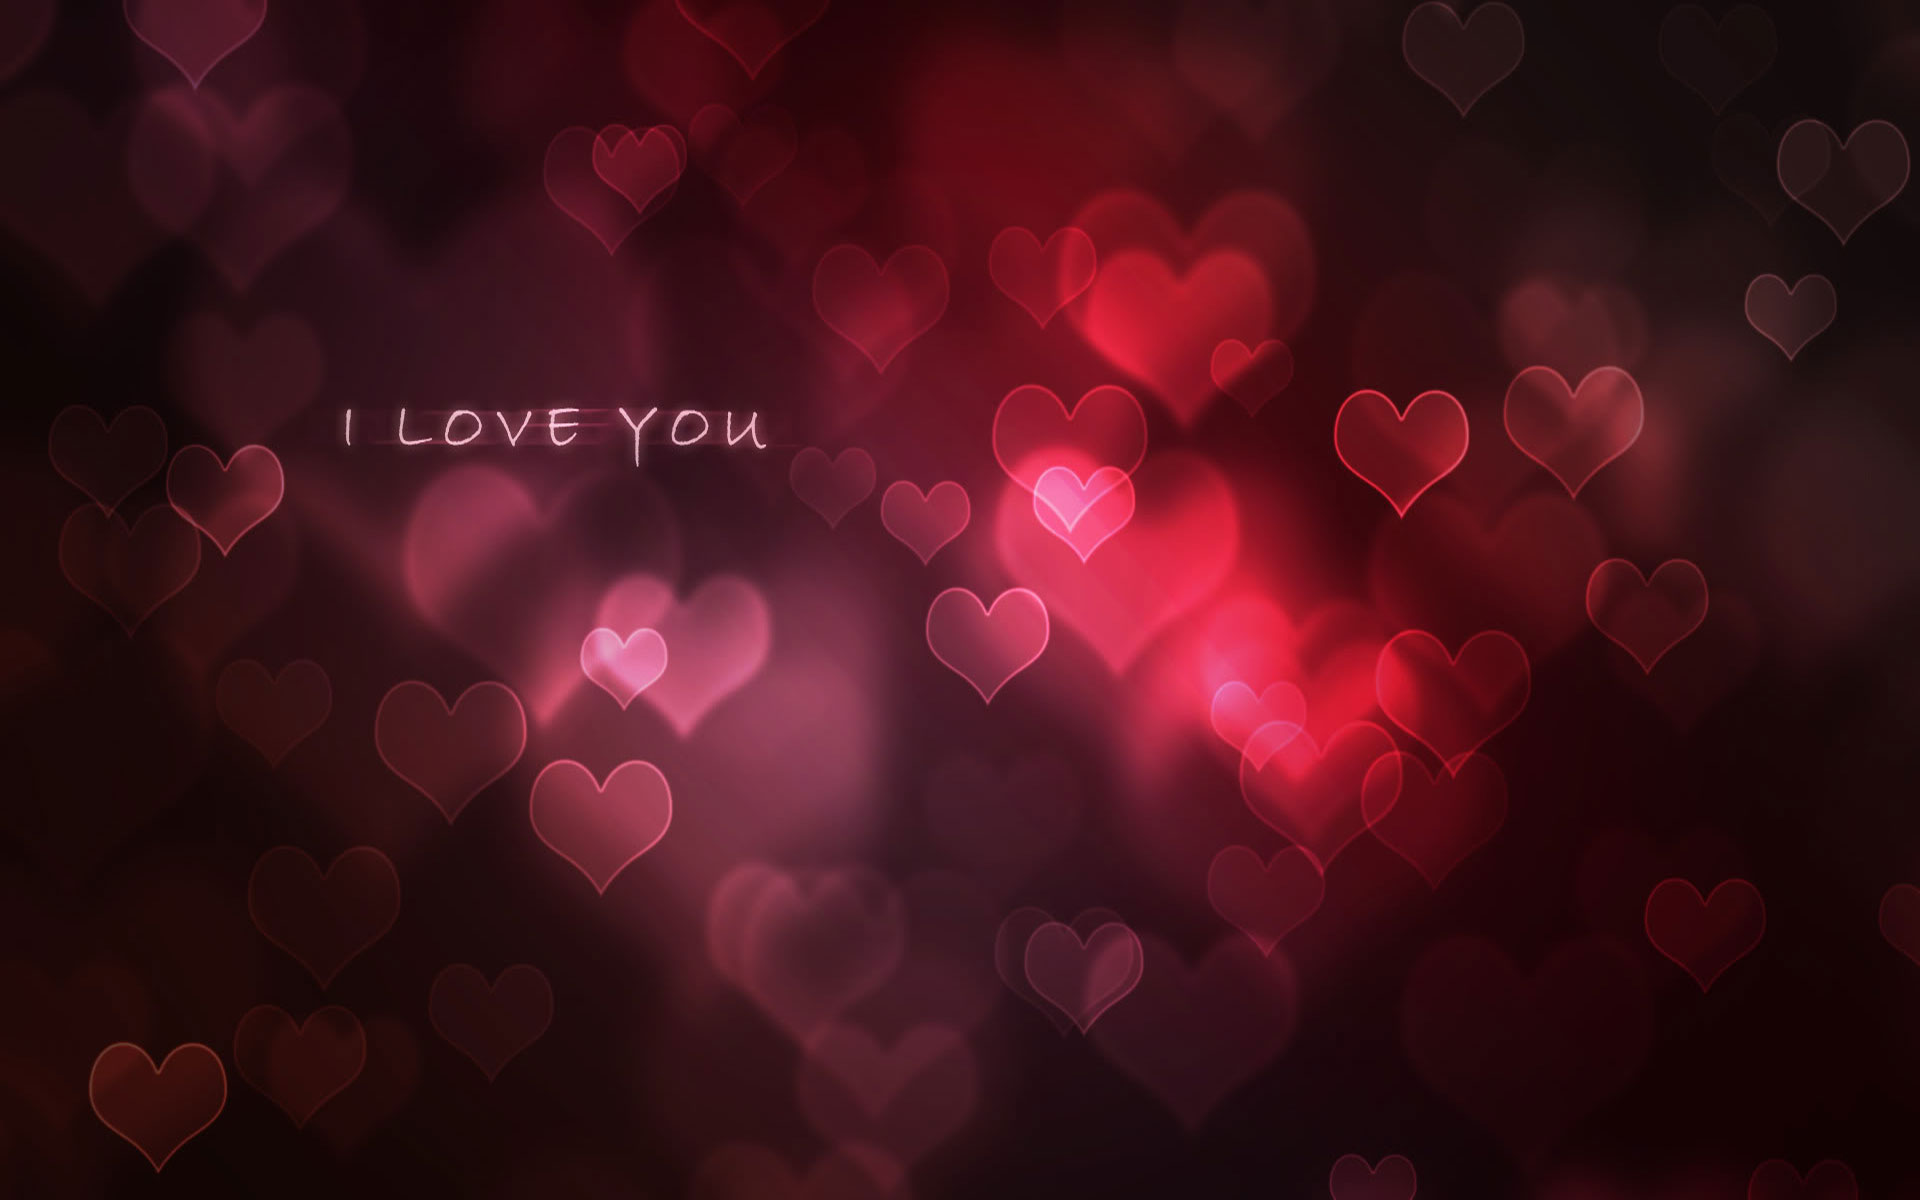 25+ Free HD I Love You Wallpapers cute I Love You Images